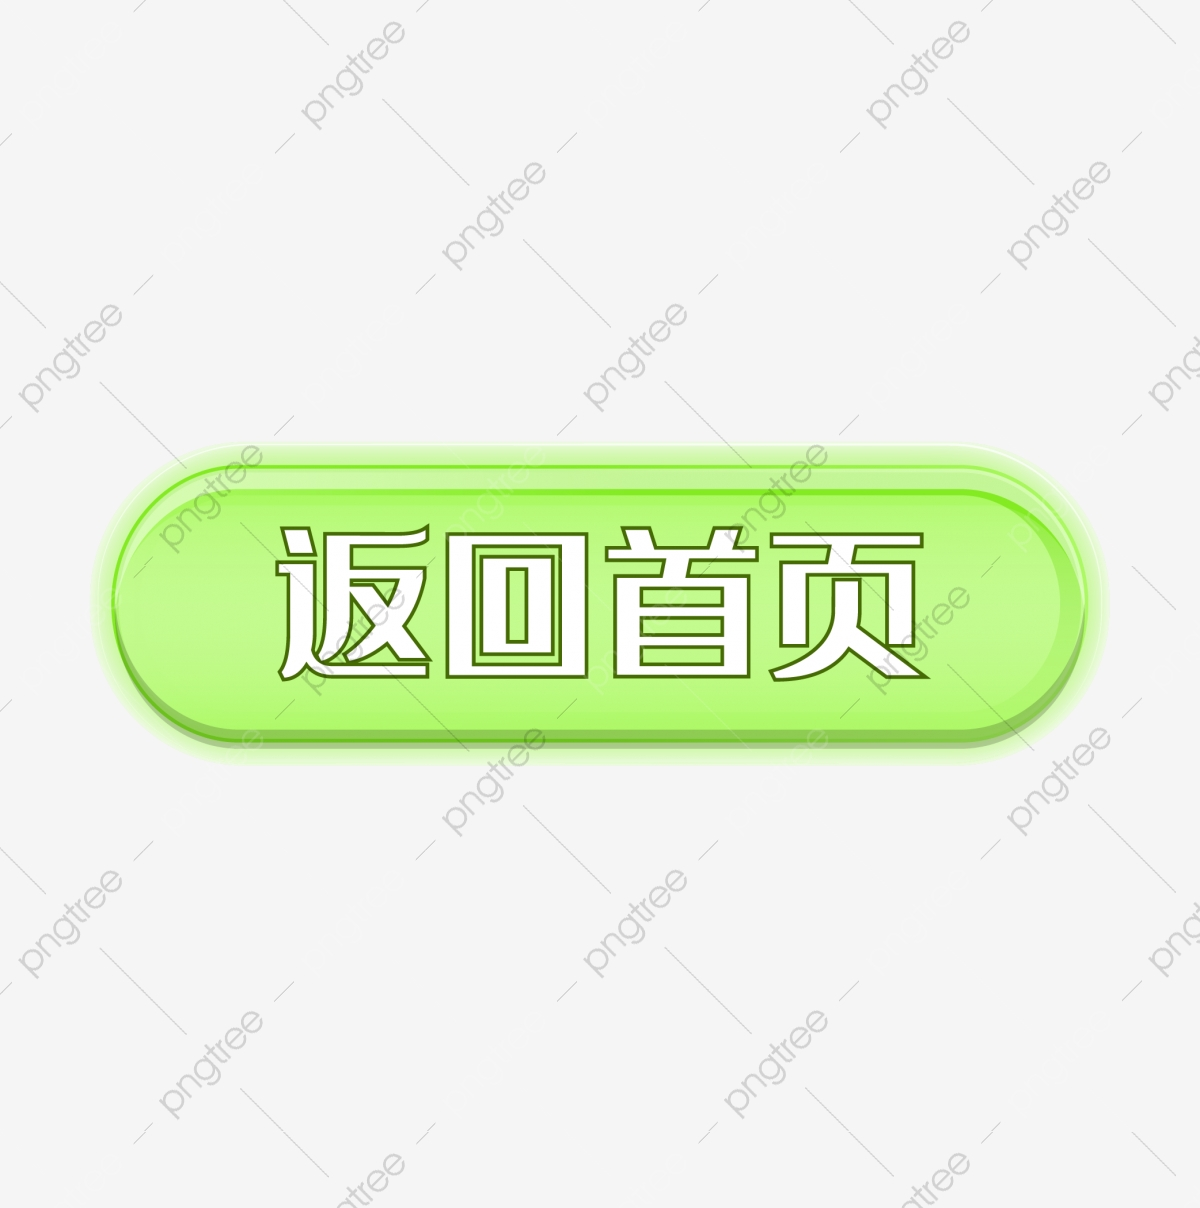 home button png images vector and psd files free download on pngtree https pngtree com freepng back to home button 5405532 html